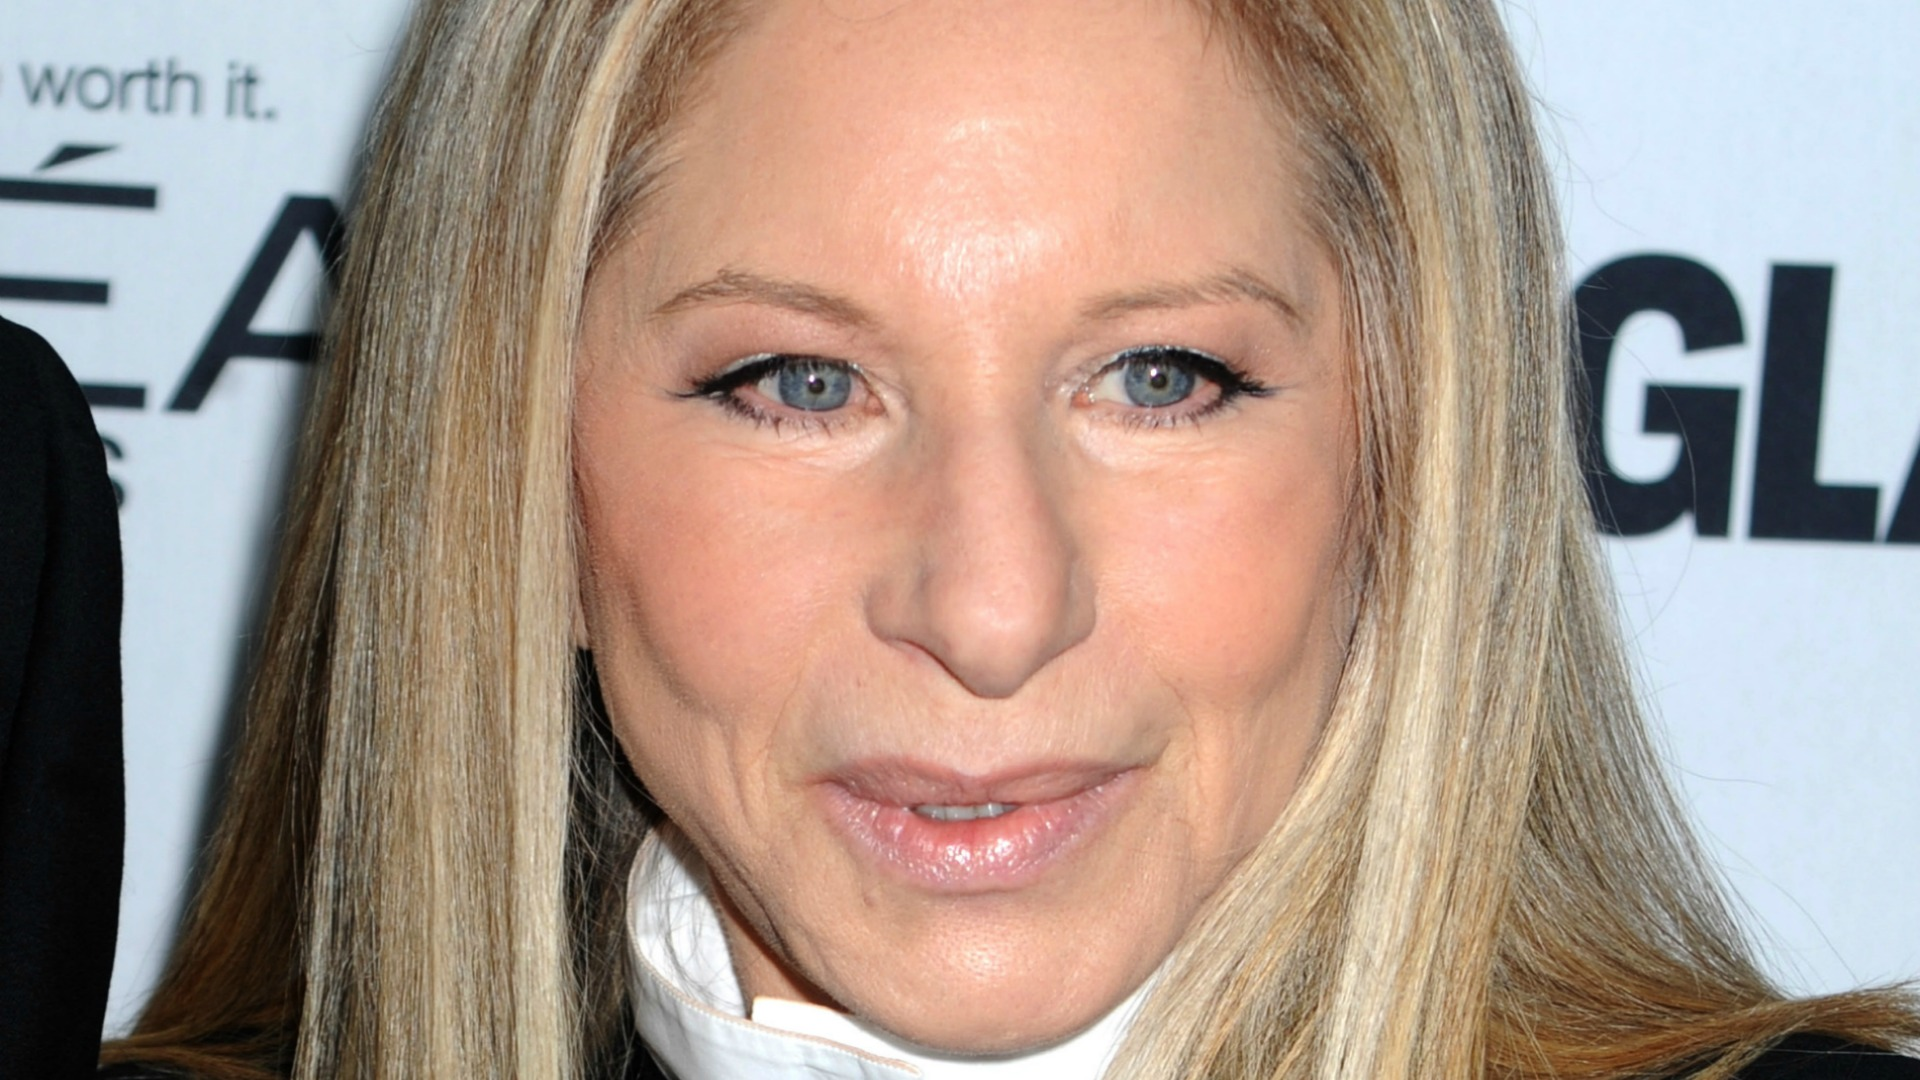 Barbra Streisand takes a stand for women's rights in Israel >>